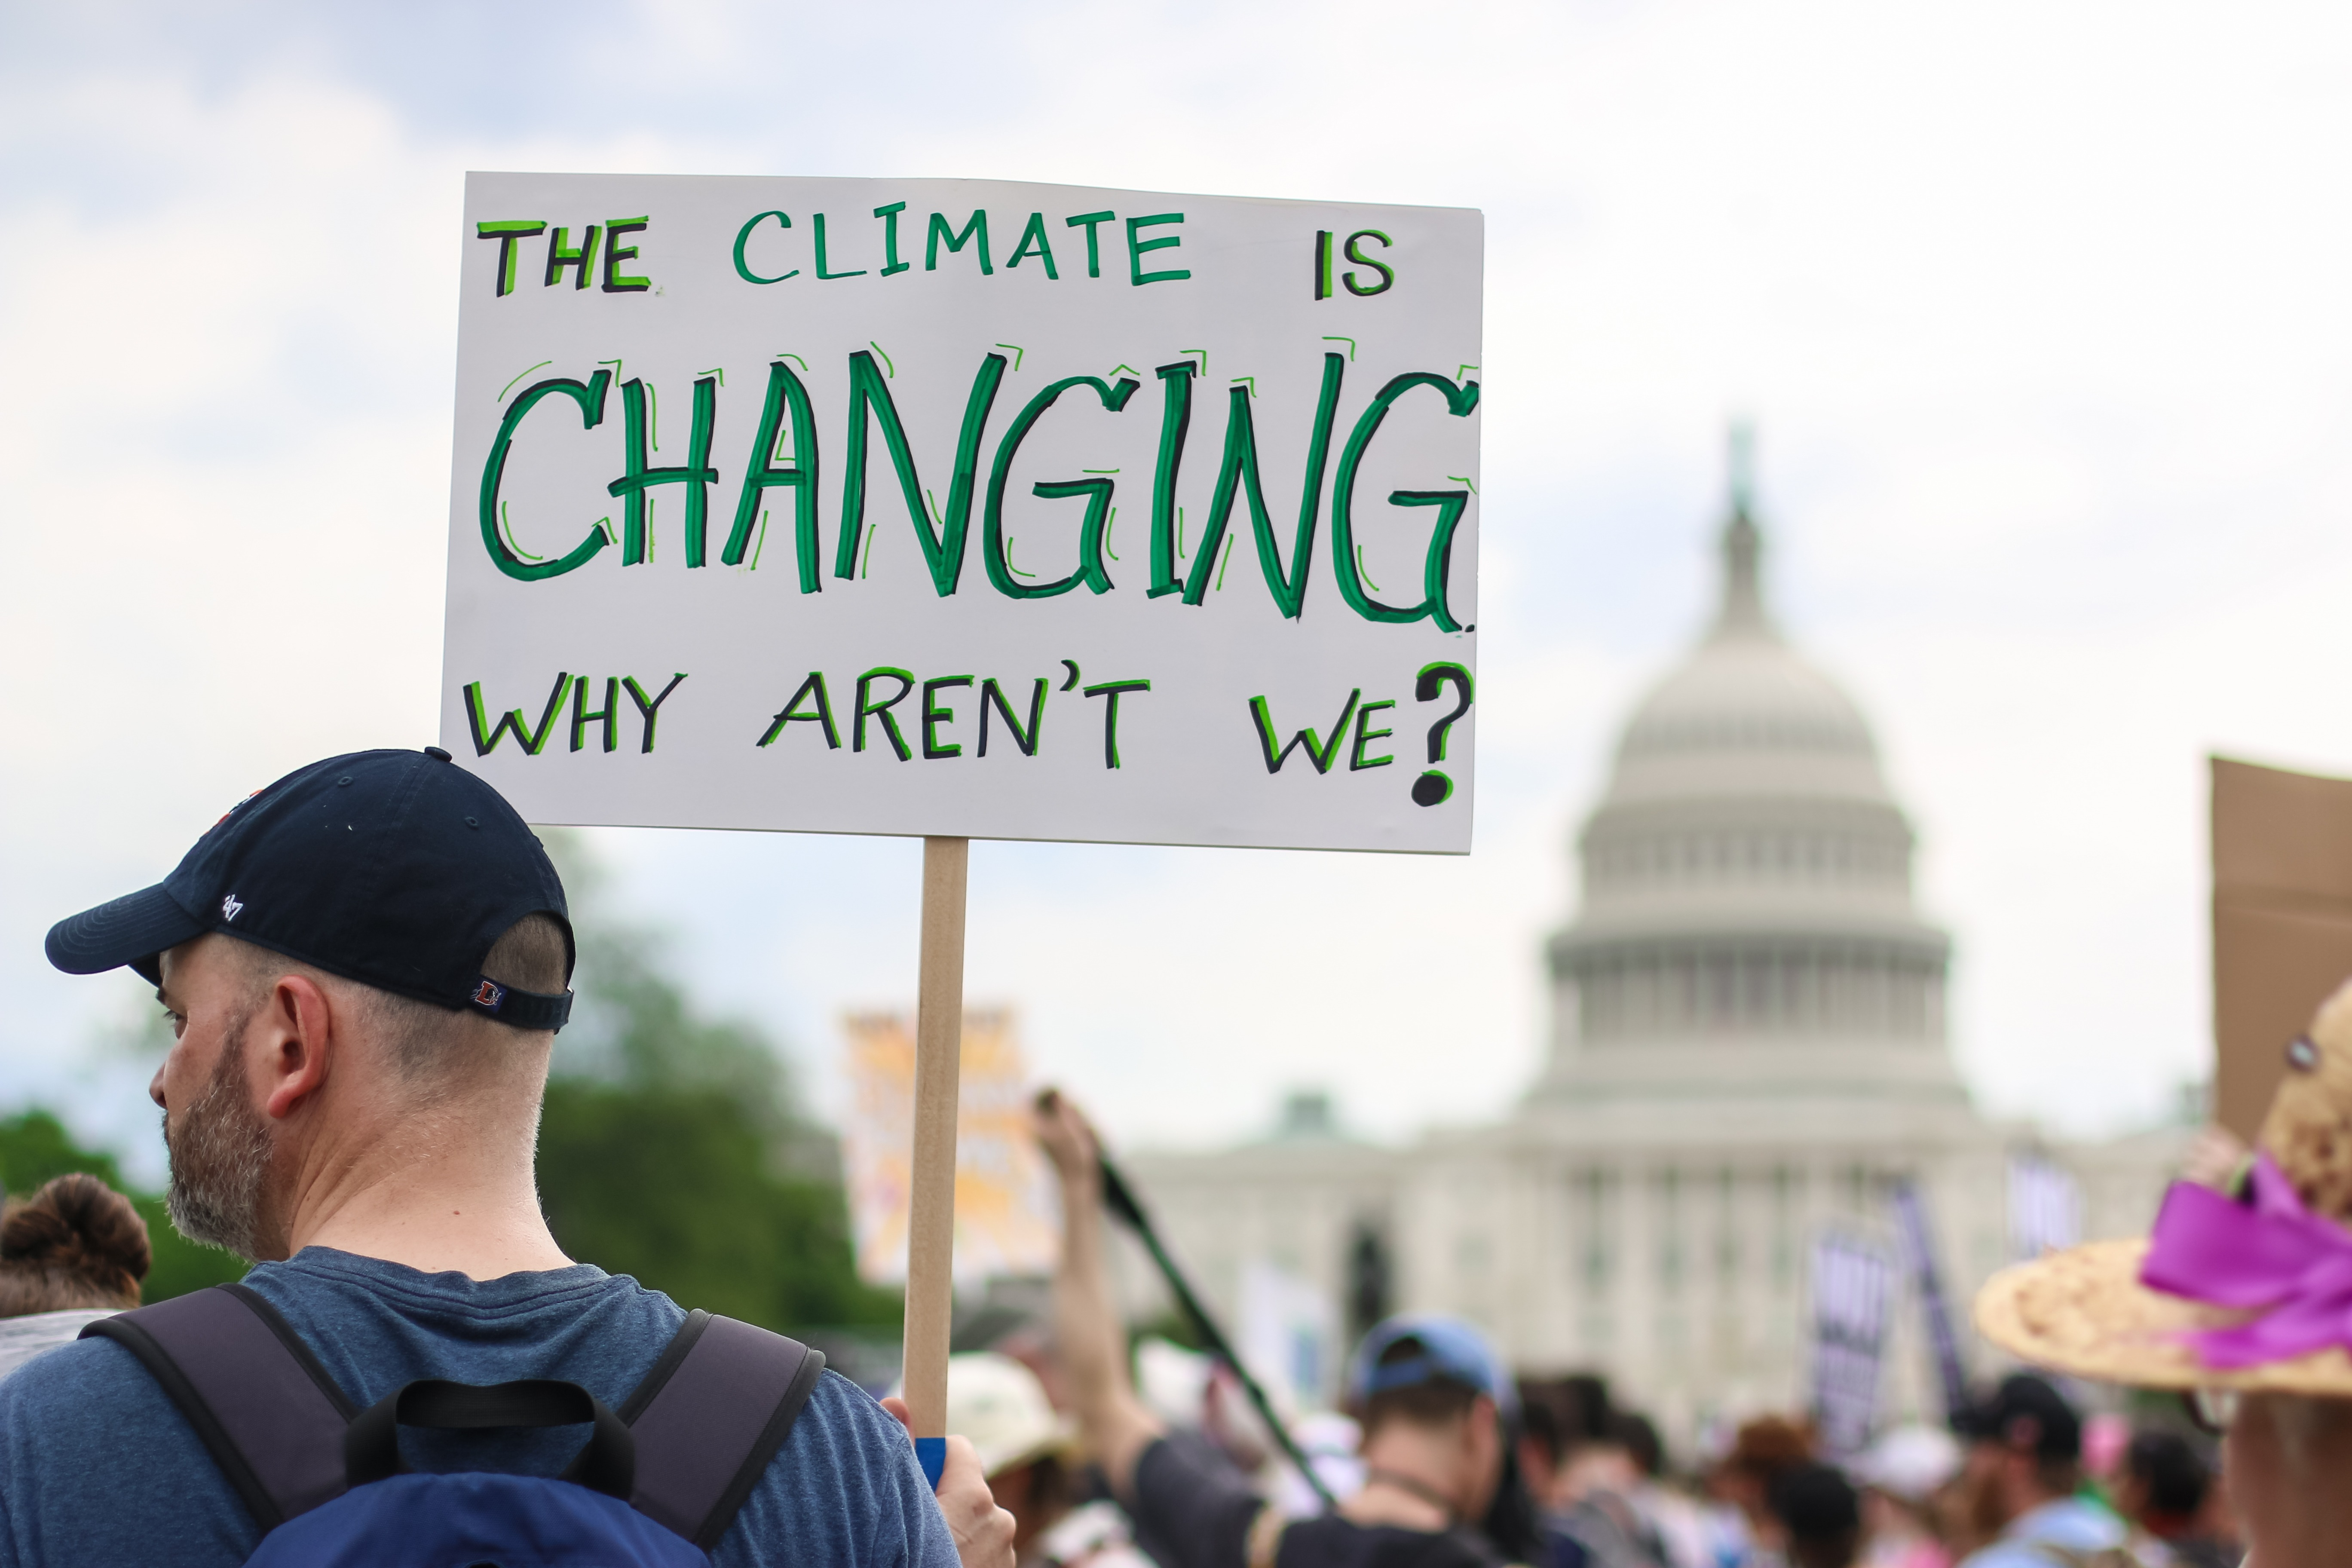 Republican Policies on Climate Change Are Putting Future Generations of Children at Risk